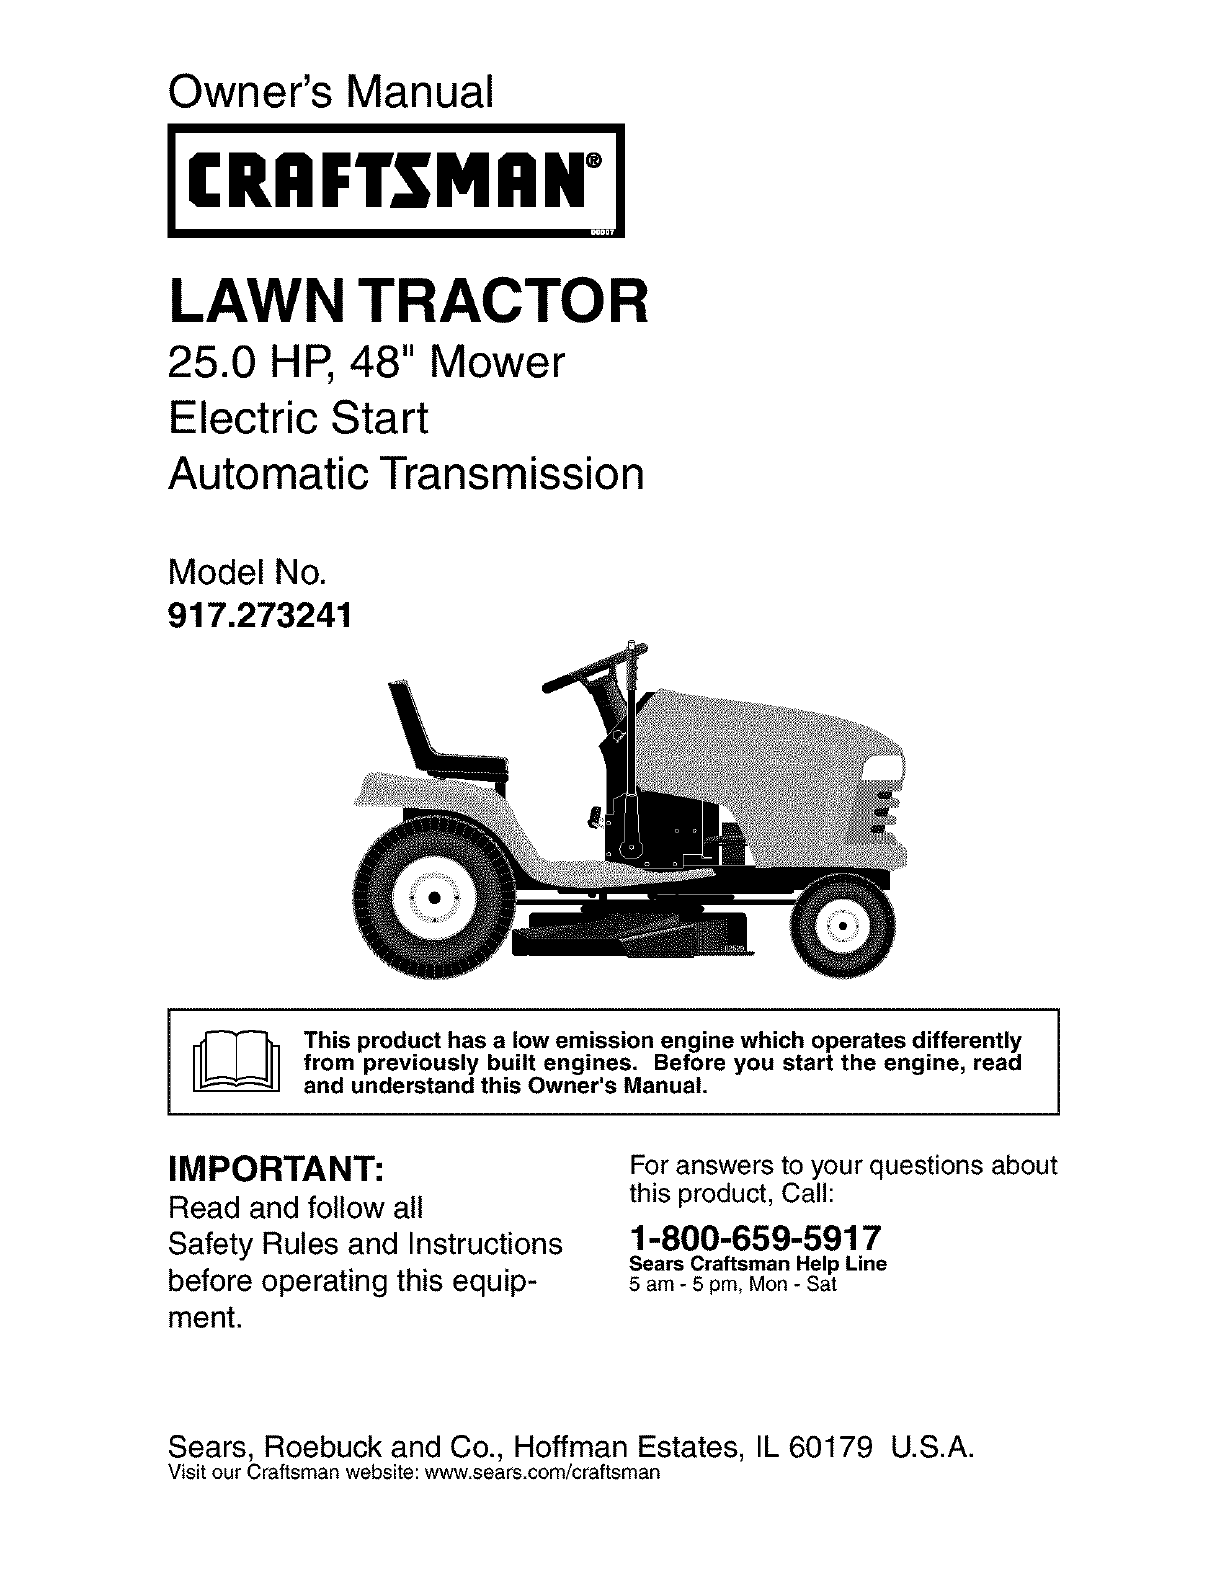 Craftsman 917273241 User Manual TRACTOR Manuals And Guides